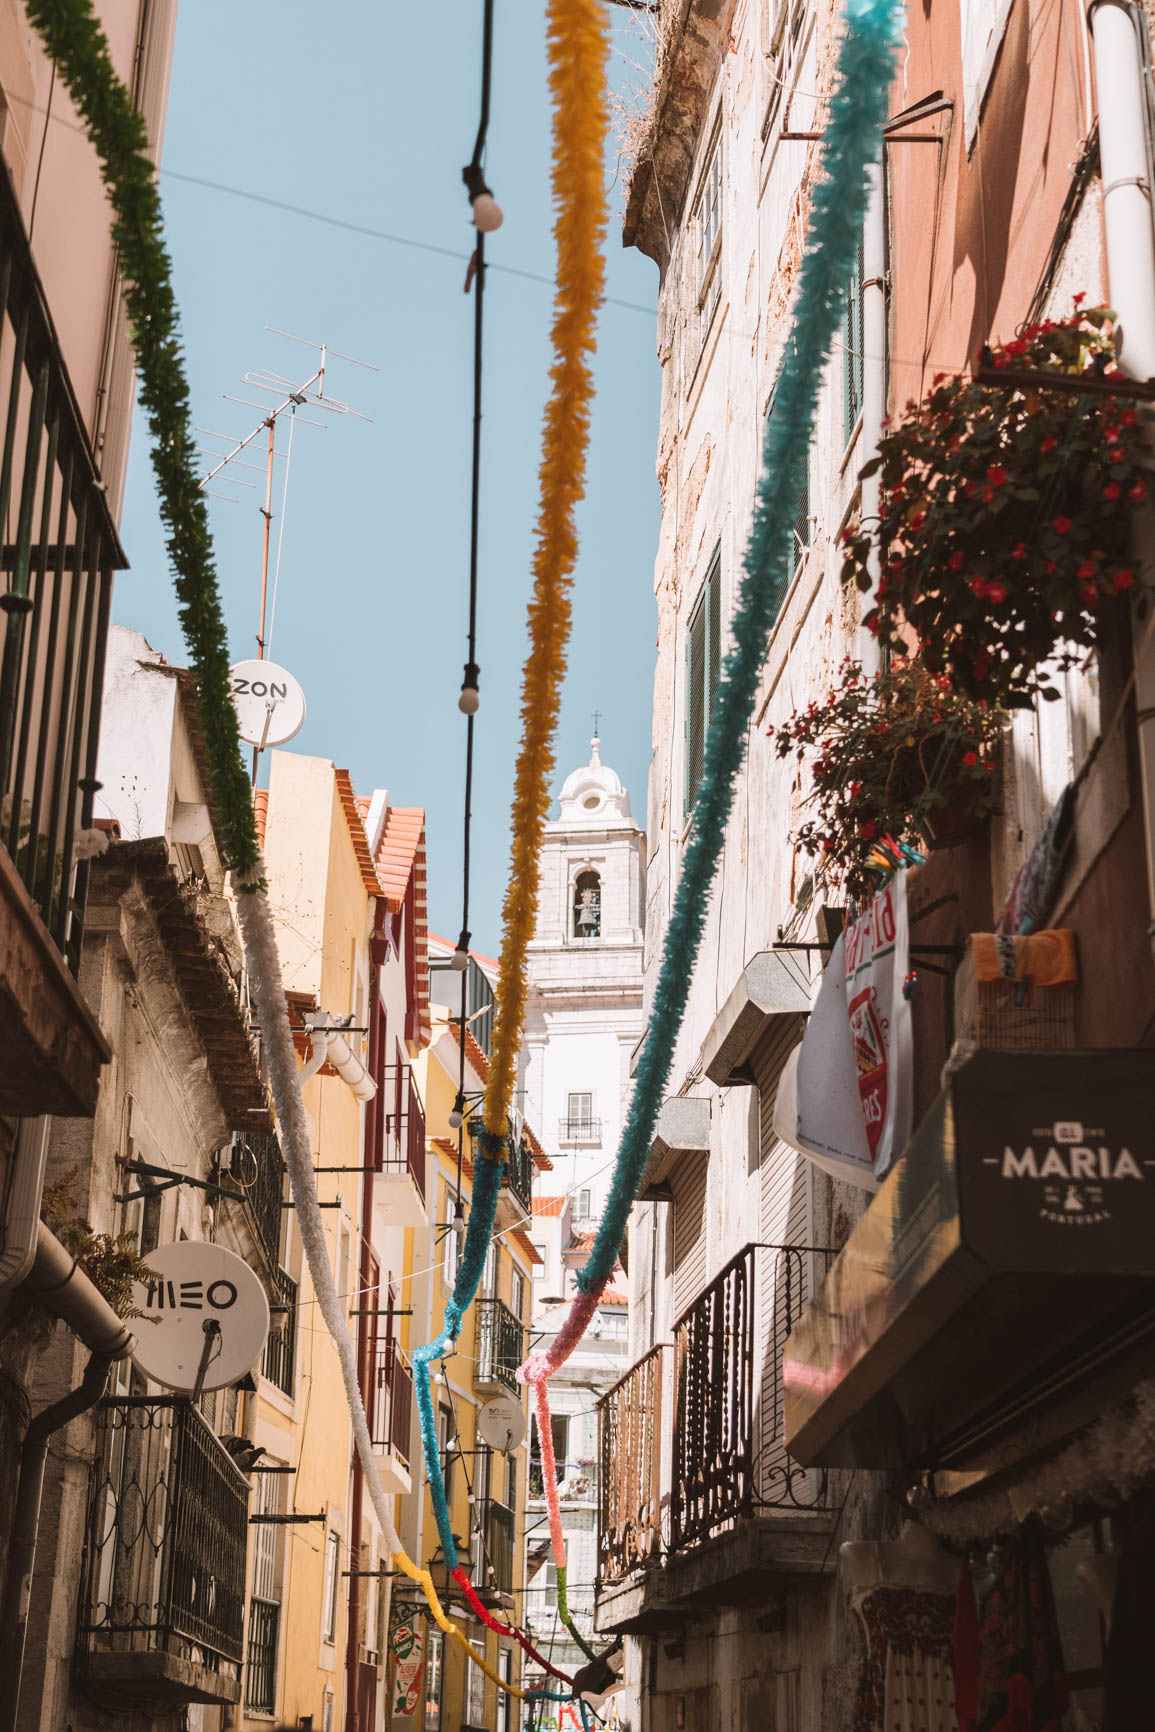 The Ultimate Guide: 2 Days in Lisbon, Portugal - Things to do and where to eat in #Lisbon #Portugal